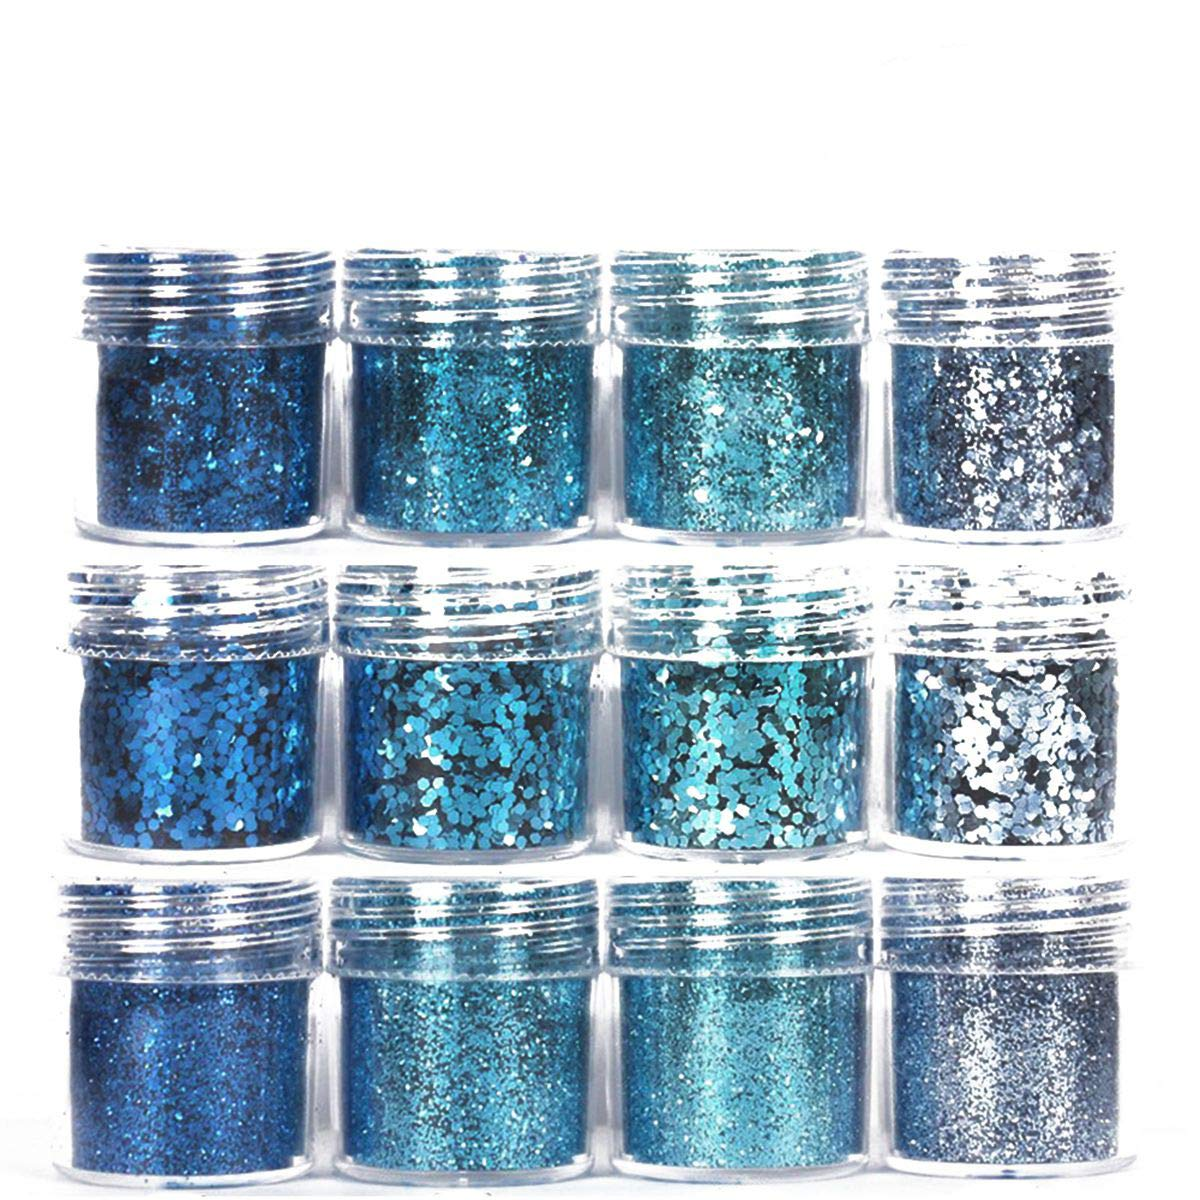 Canvalite 12 bottles Nail Iridescent Glitter Gradient Chunky Sequins Dust Nail Decoration Acrylic Powder for Nail Art Face Body Makeup